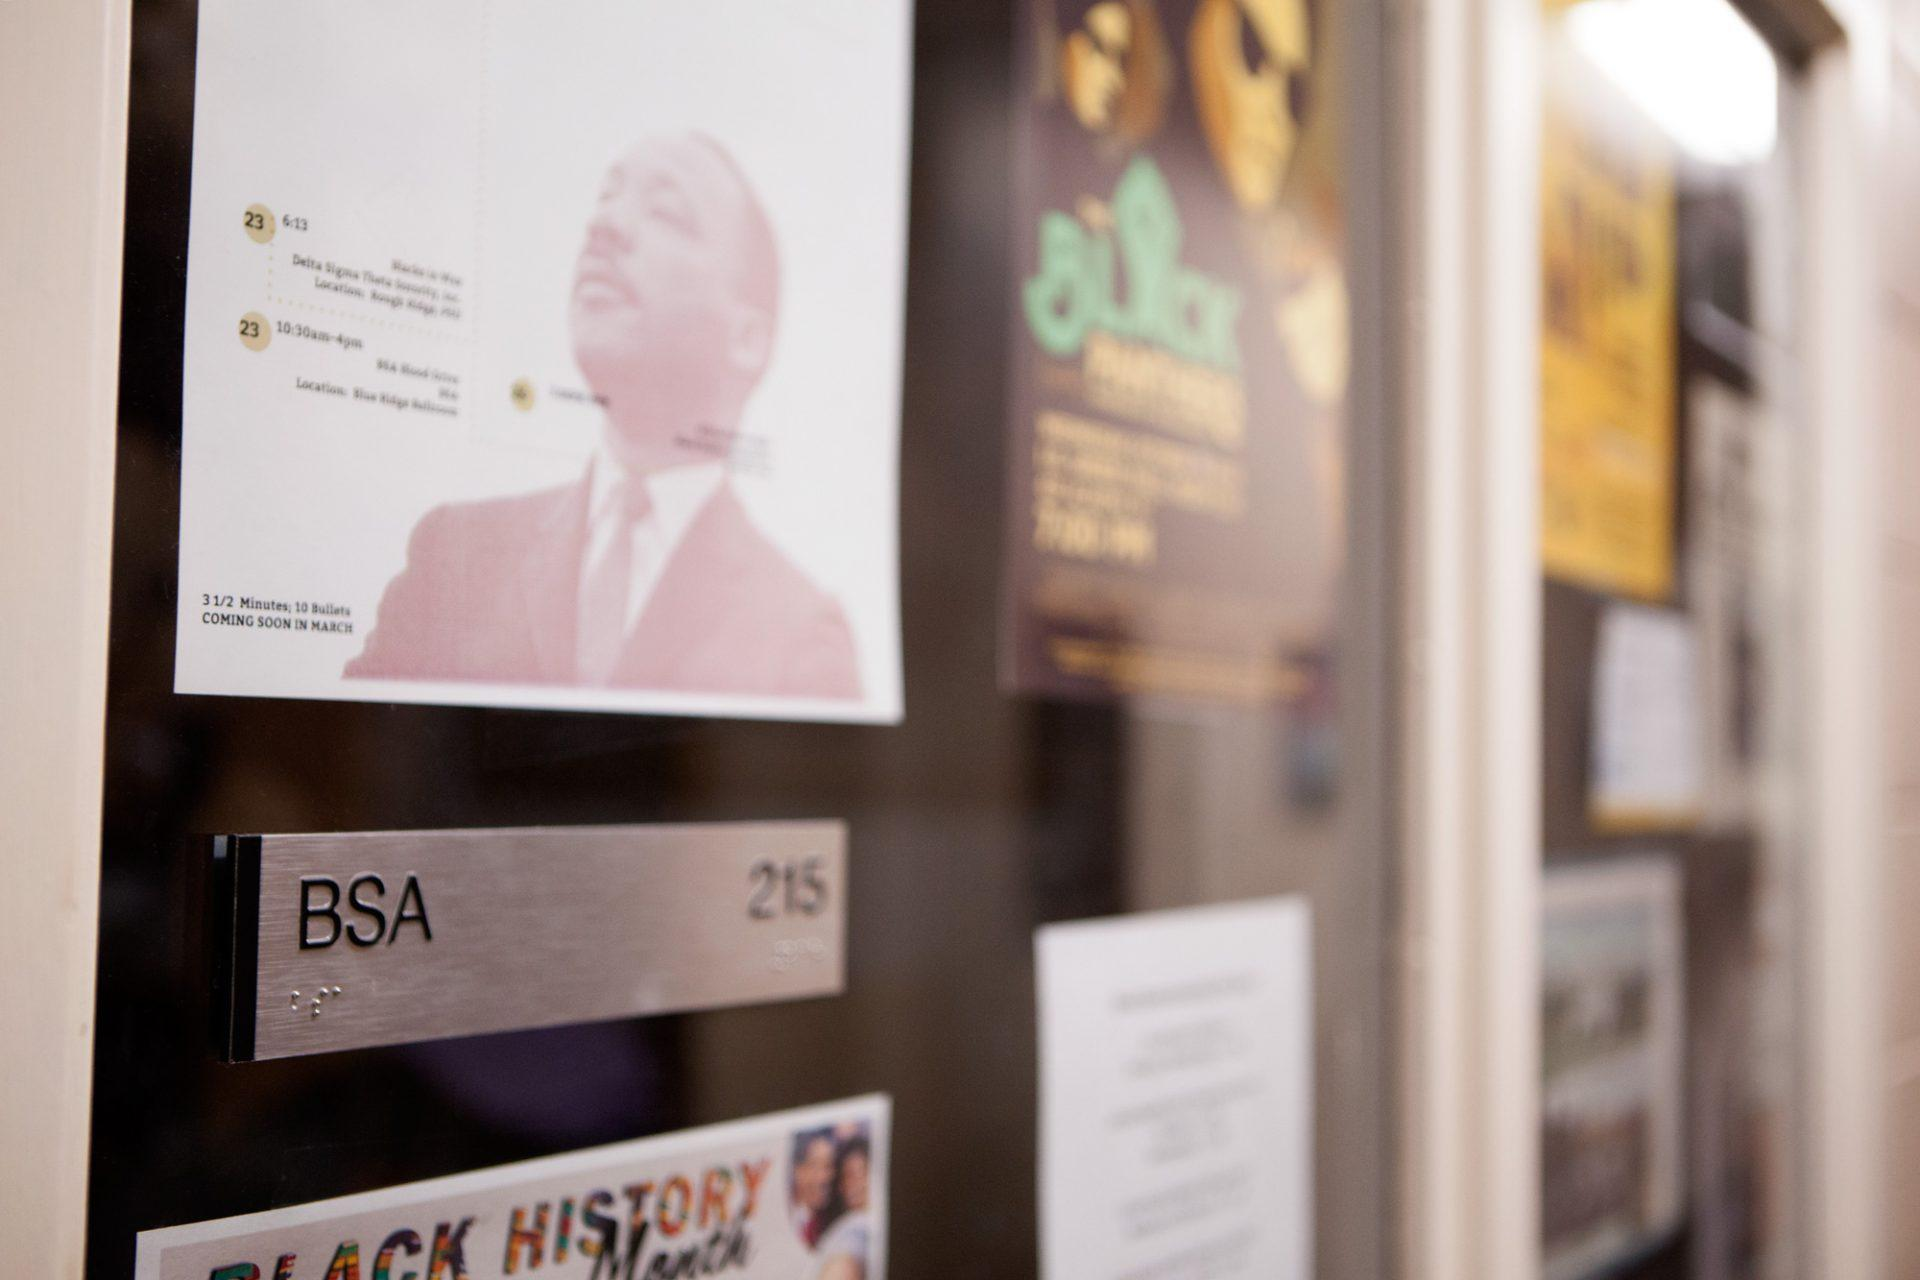 Posters+displayed+outside+of+the+Black+Student+Association.+BSA+is+located+in+room+215+of+Plemmons+Student+Union.